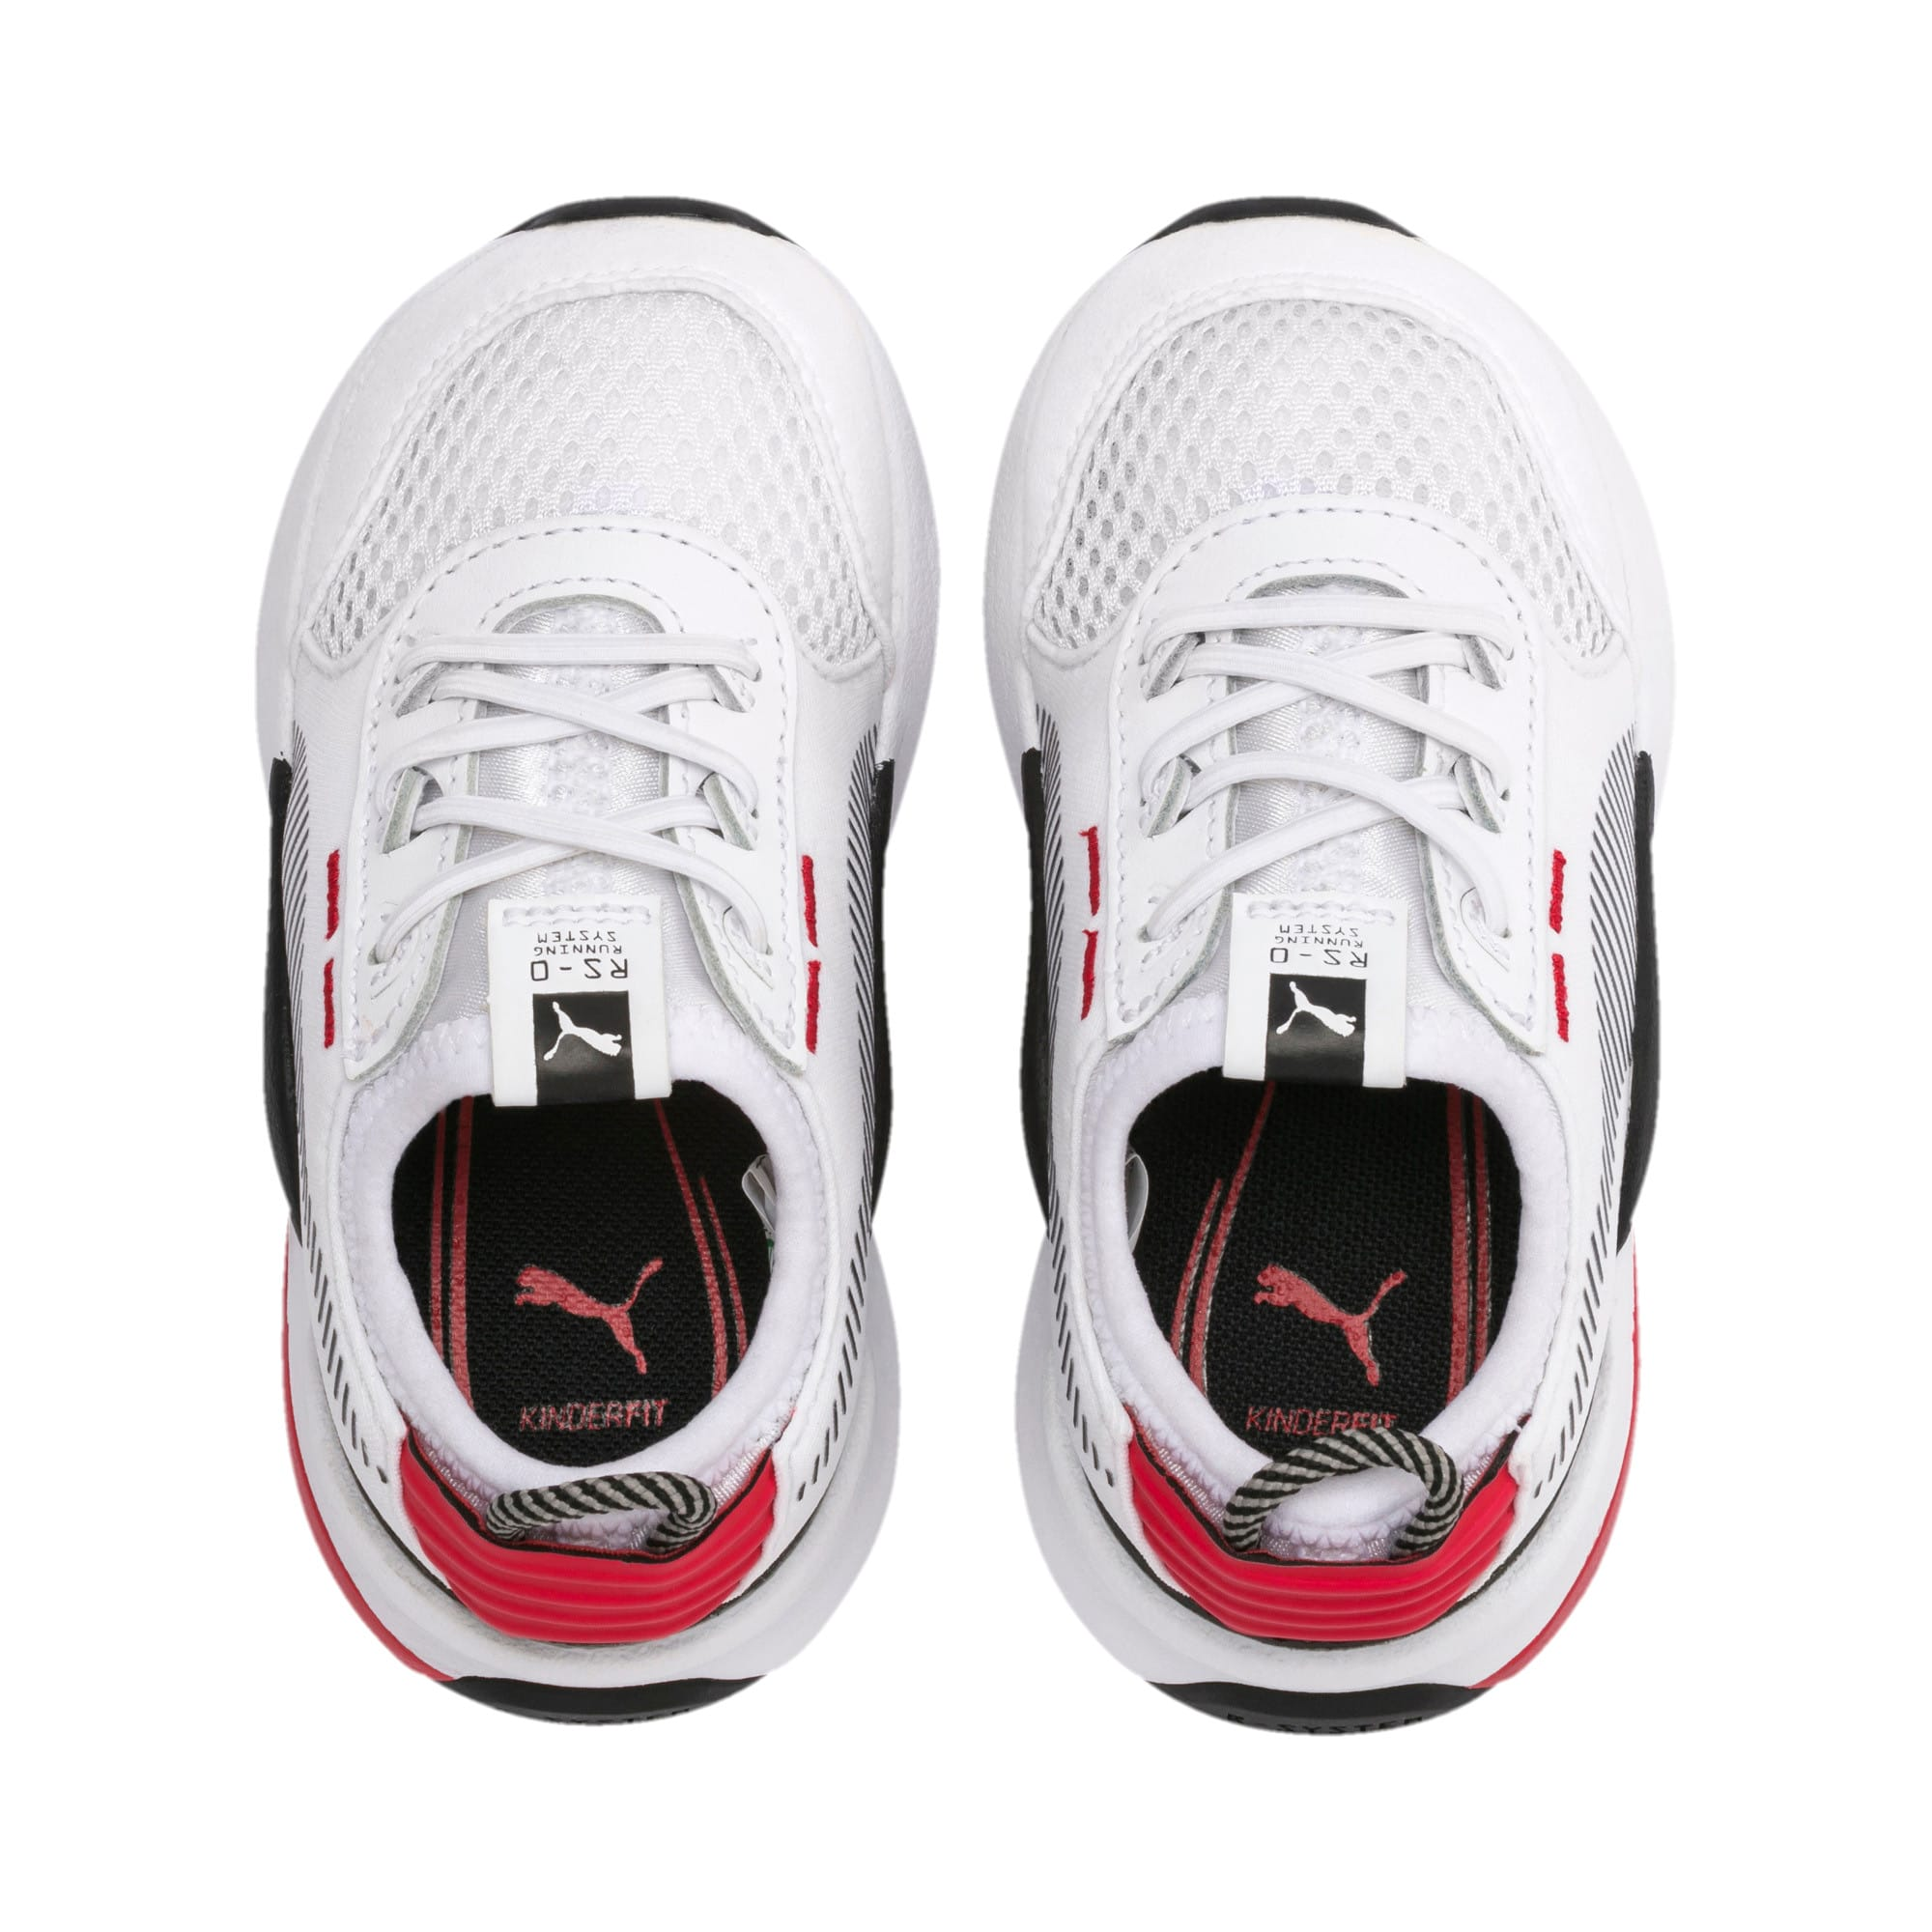 Thumbnail 6 of RS-0 Winter Inj Toys INF Shoes, Puma White-High Risk Red, medium